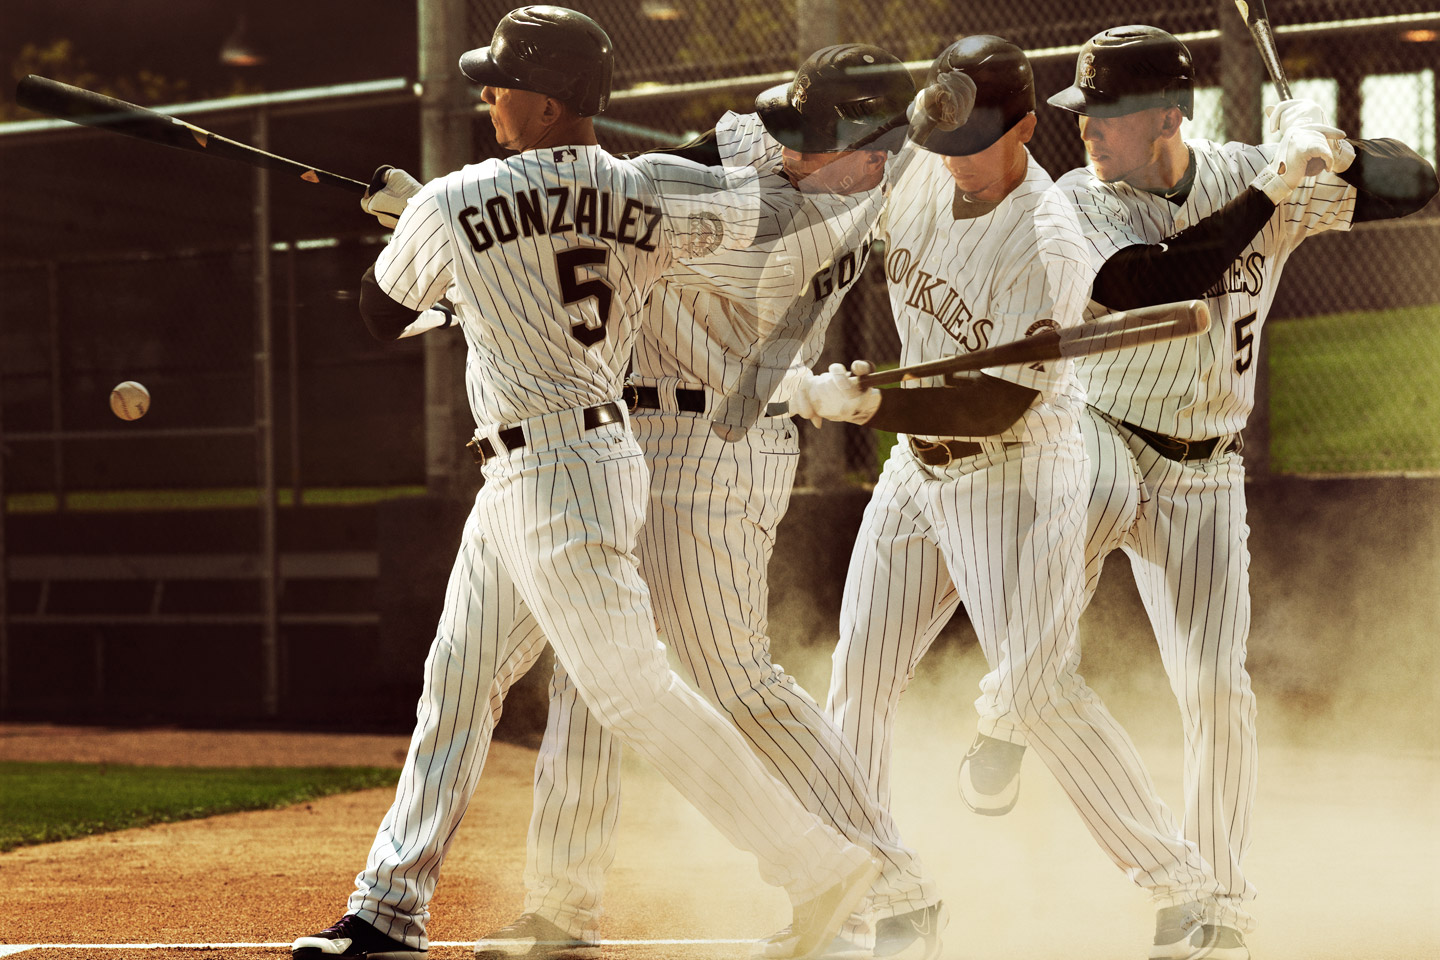 Best mechanics in sports: Swing by Carlos Gonzalez, Colorado Rockies